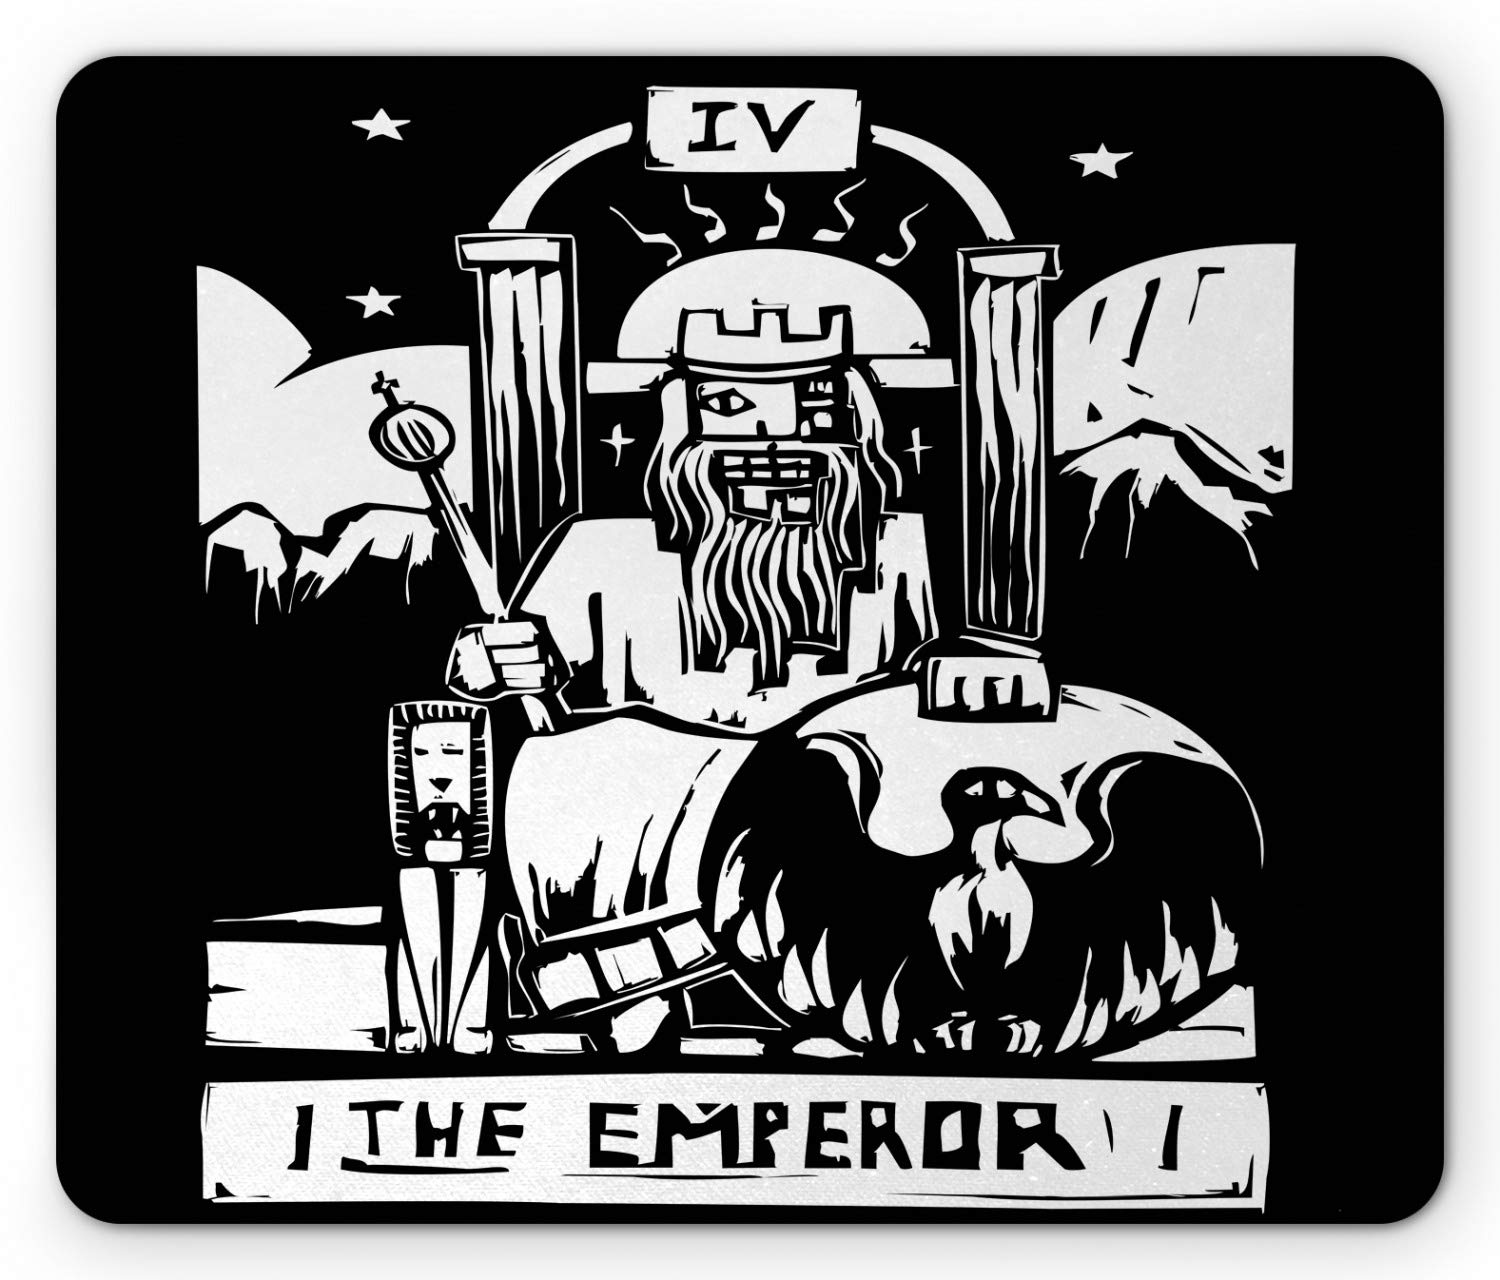 Ambesonne Tarot Mouse Pad, Tarot Card for The Emperor Woodcut Style Illustration Monochromatic Artwork, Standard Size Rectangle Non-Slip Rubber Mousepad, Black and White